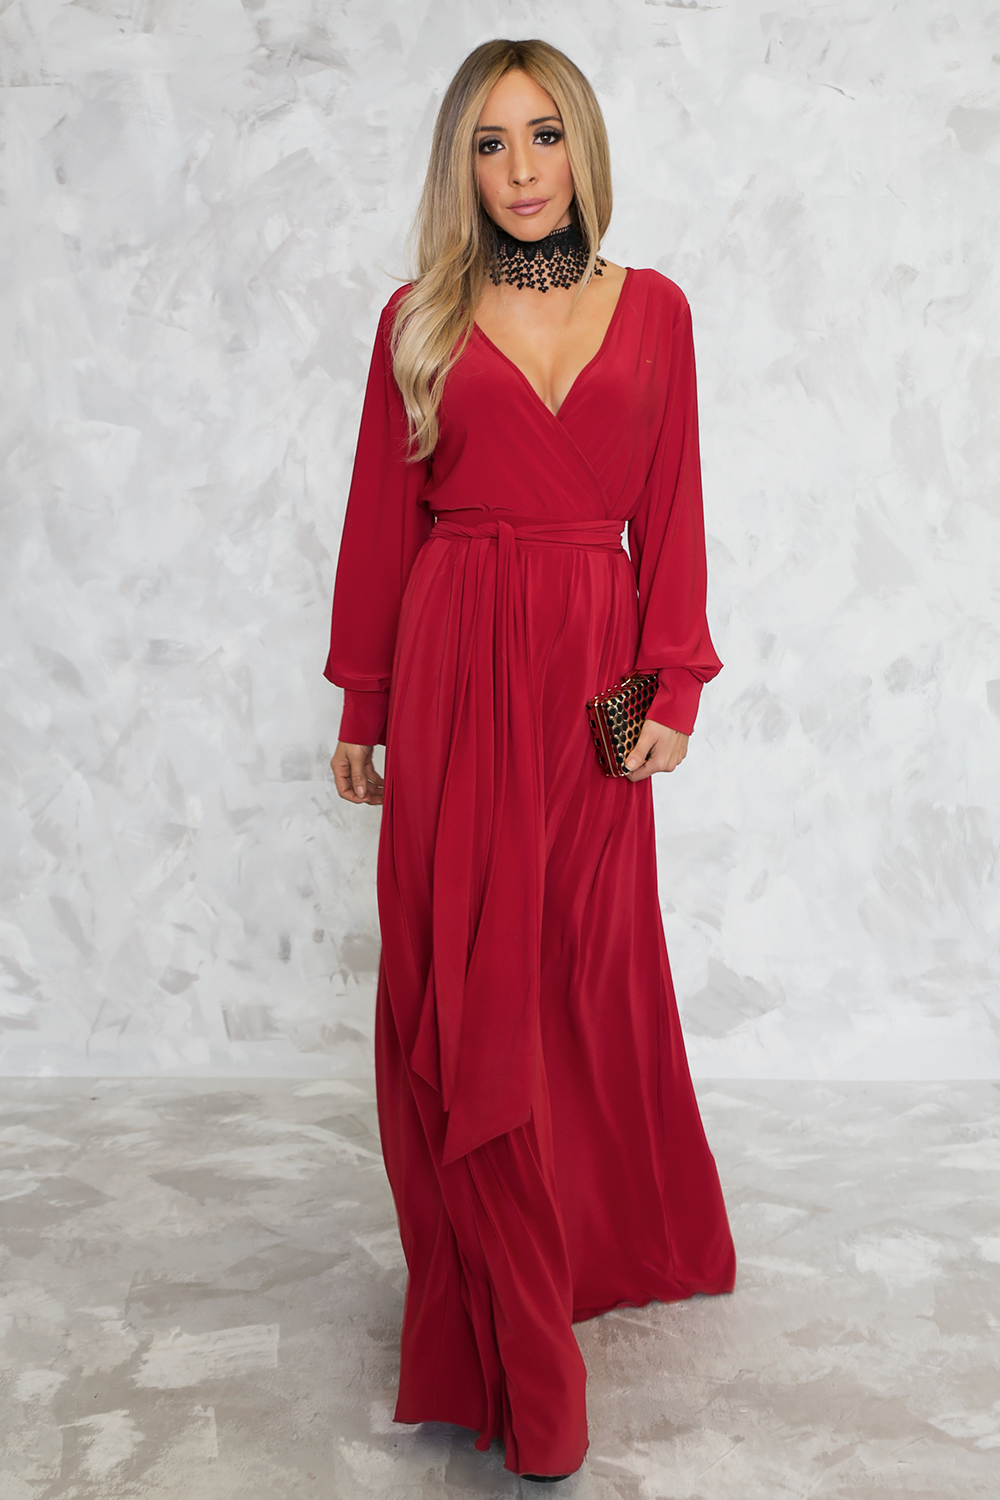 Irresistible Tie-Wrap Maxi Dress - Haute & Rebellious